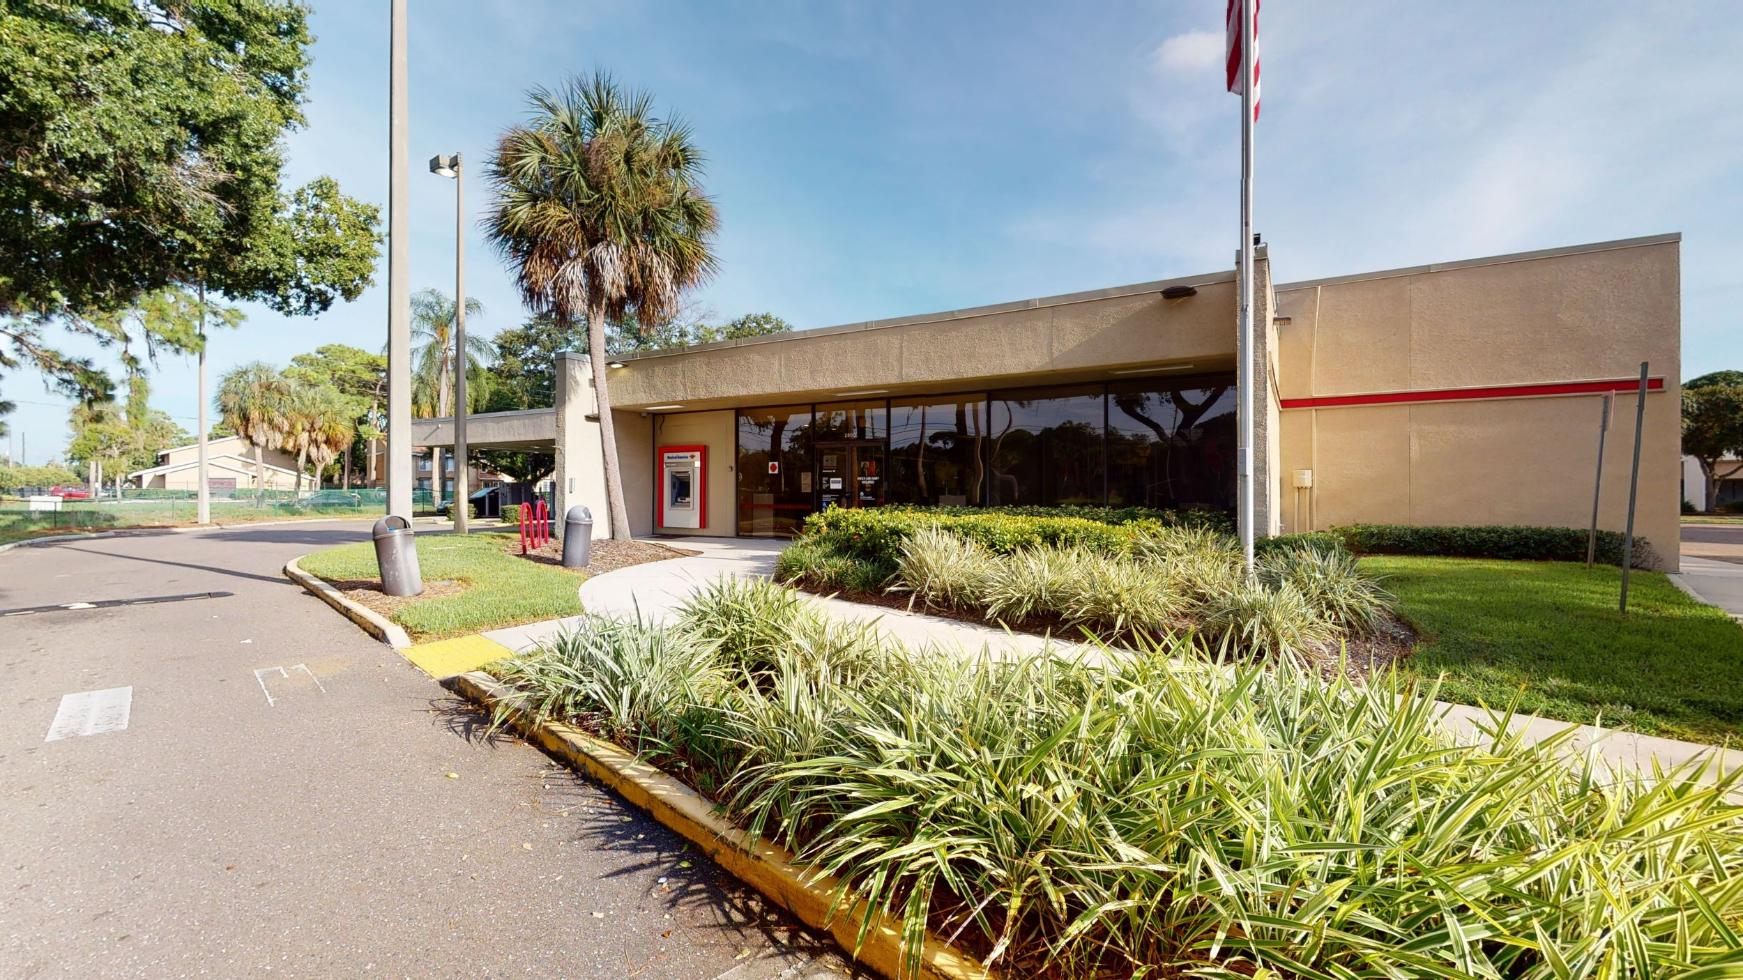 Bank of America financial center with drive-thru ATM and teller | 2800 54th Ave S, Saint Petersburg, FL 33712